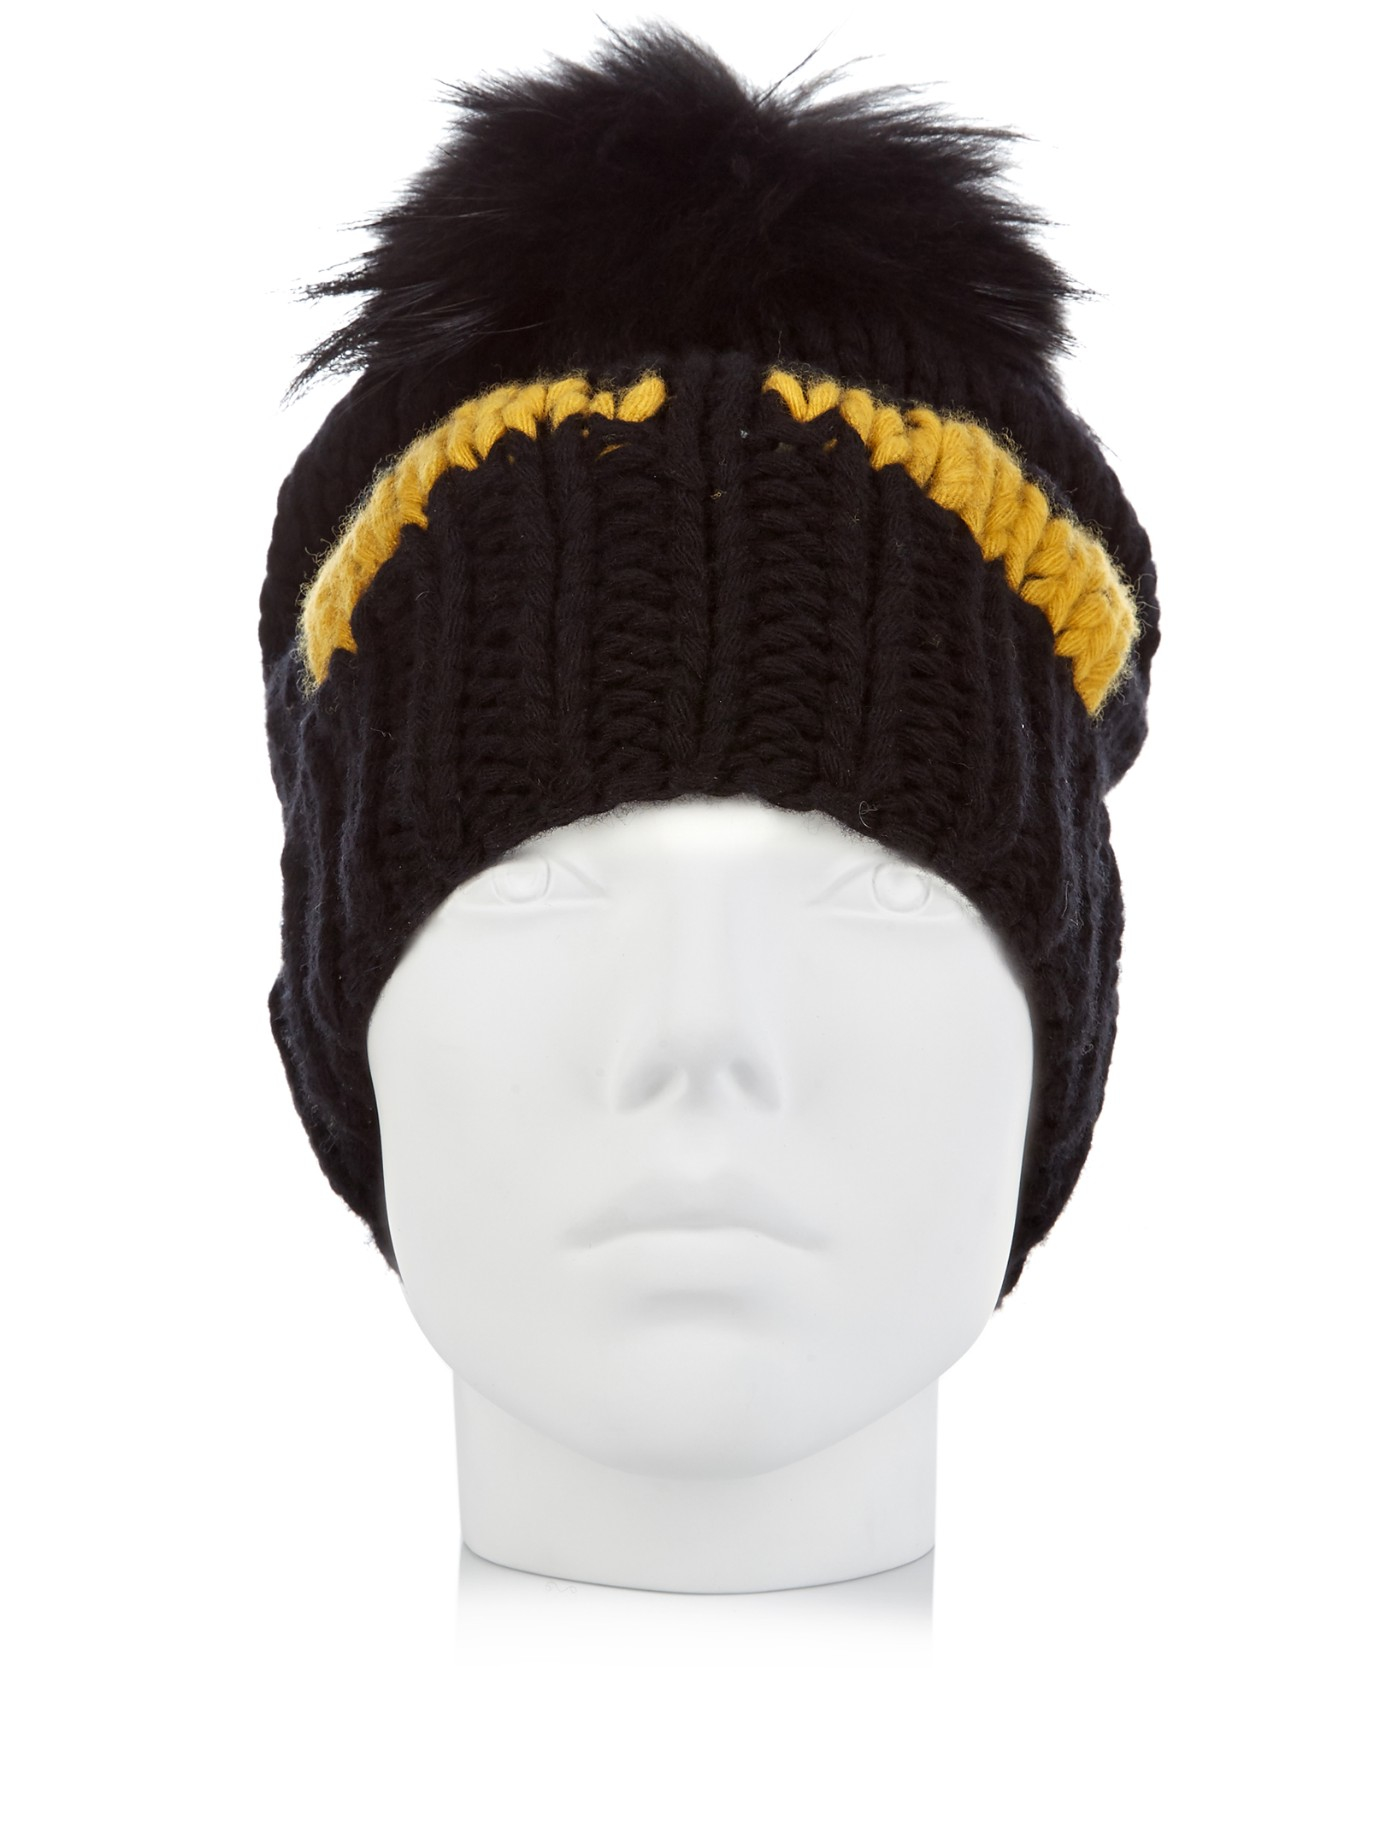 767591bb8ed Lyst - Fendi Bag Bugs-intarsia Wool-knit Beanie Hat in Black for Men